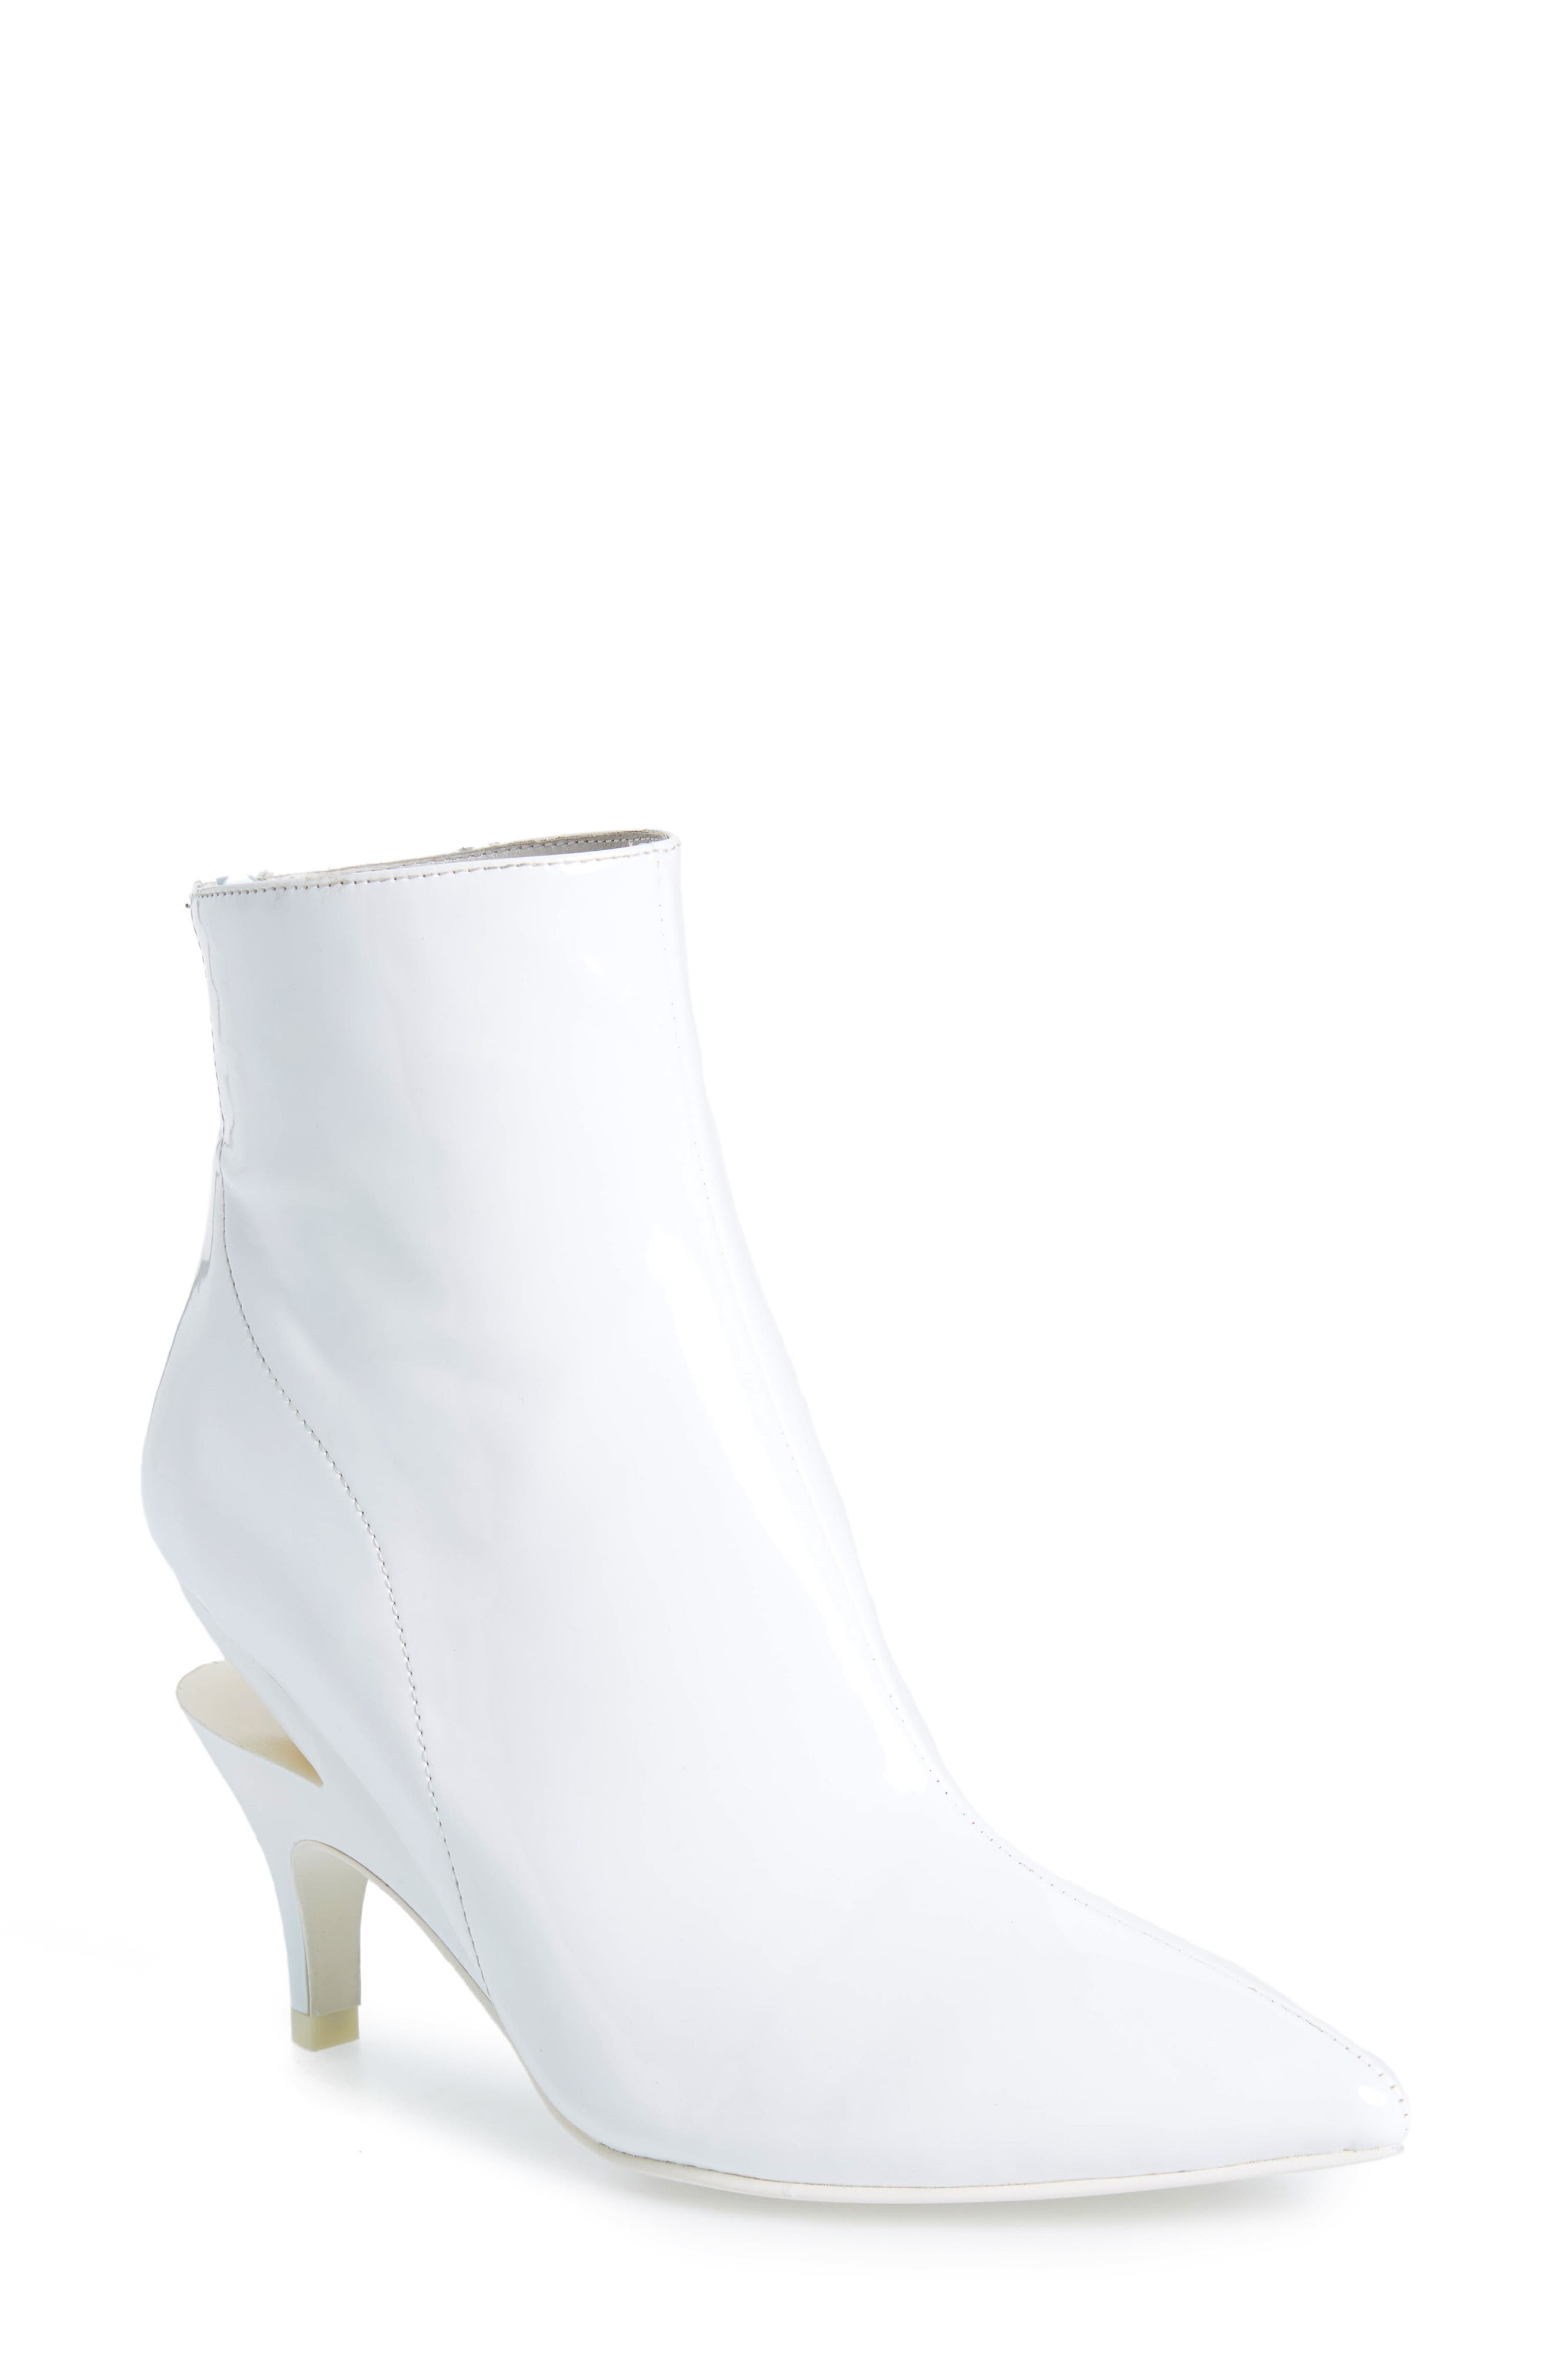 Jeffrey Campbell Museum Bootie, White